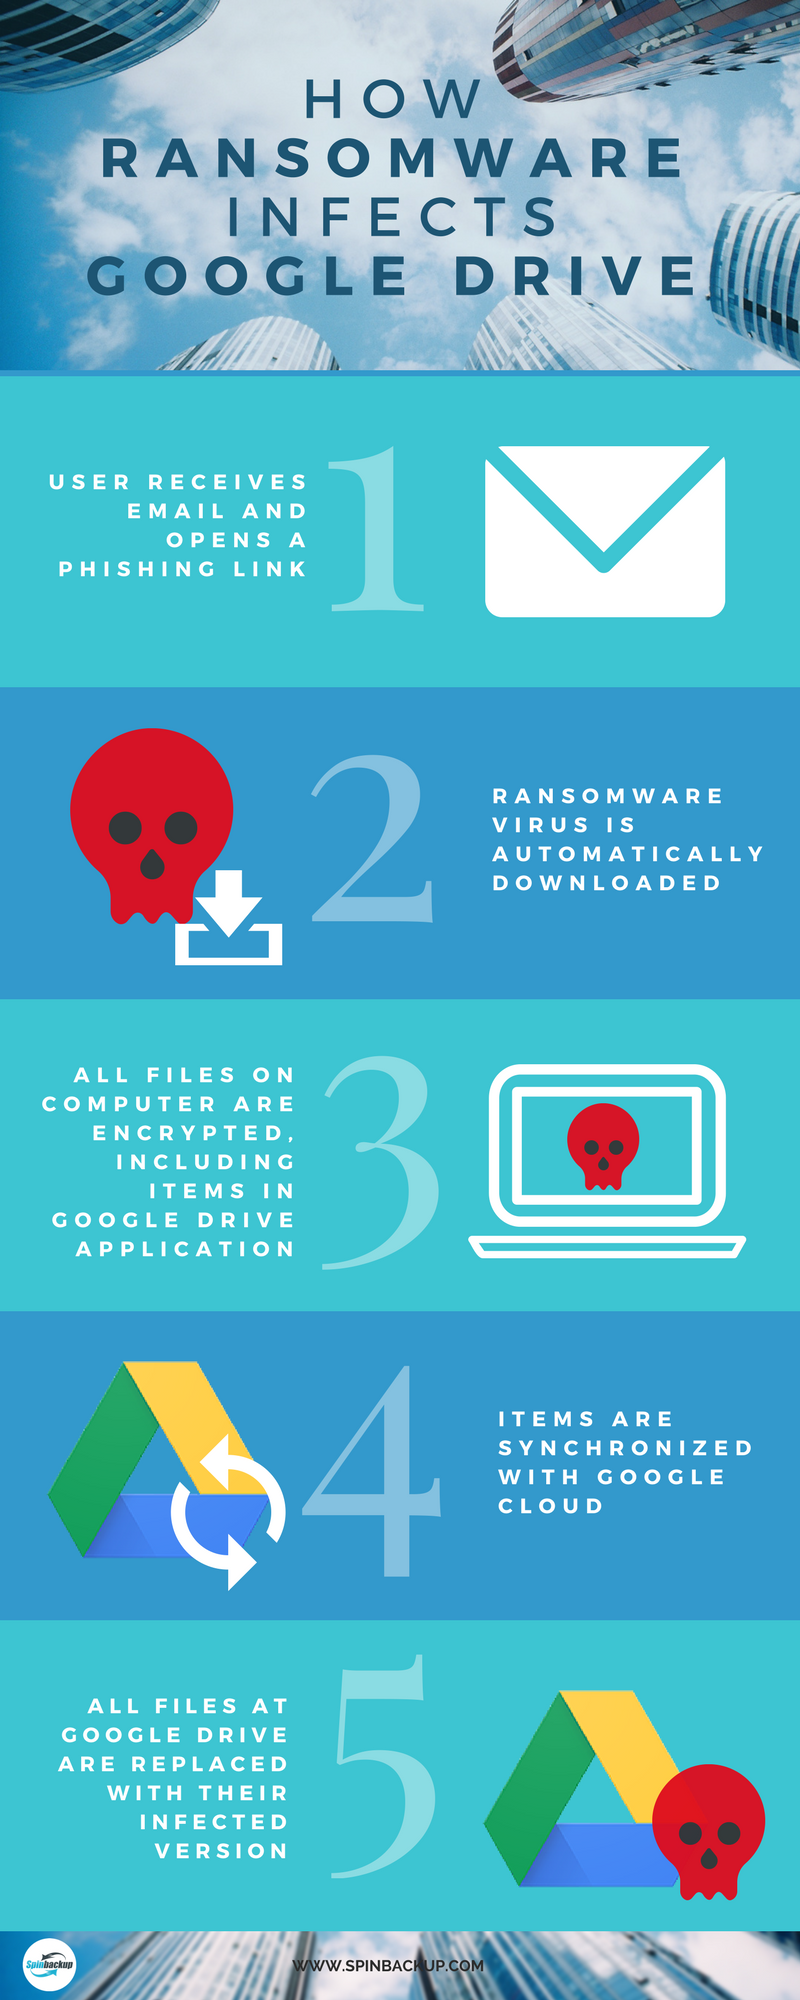 INFOGRAPHICS RANSOMWARE INFECTS GOOGLE DRIVE